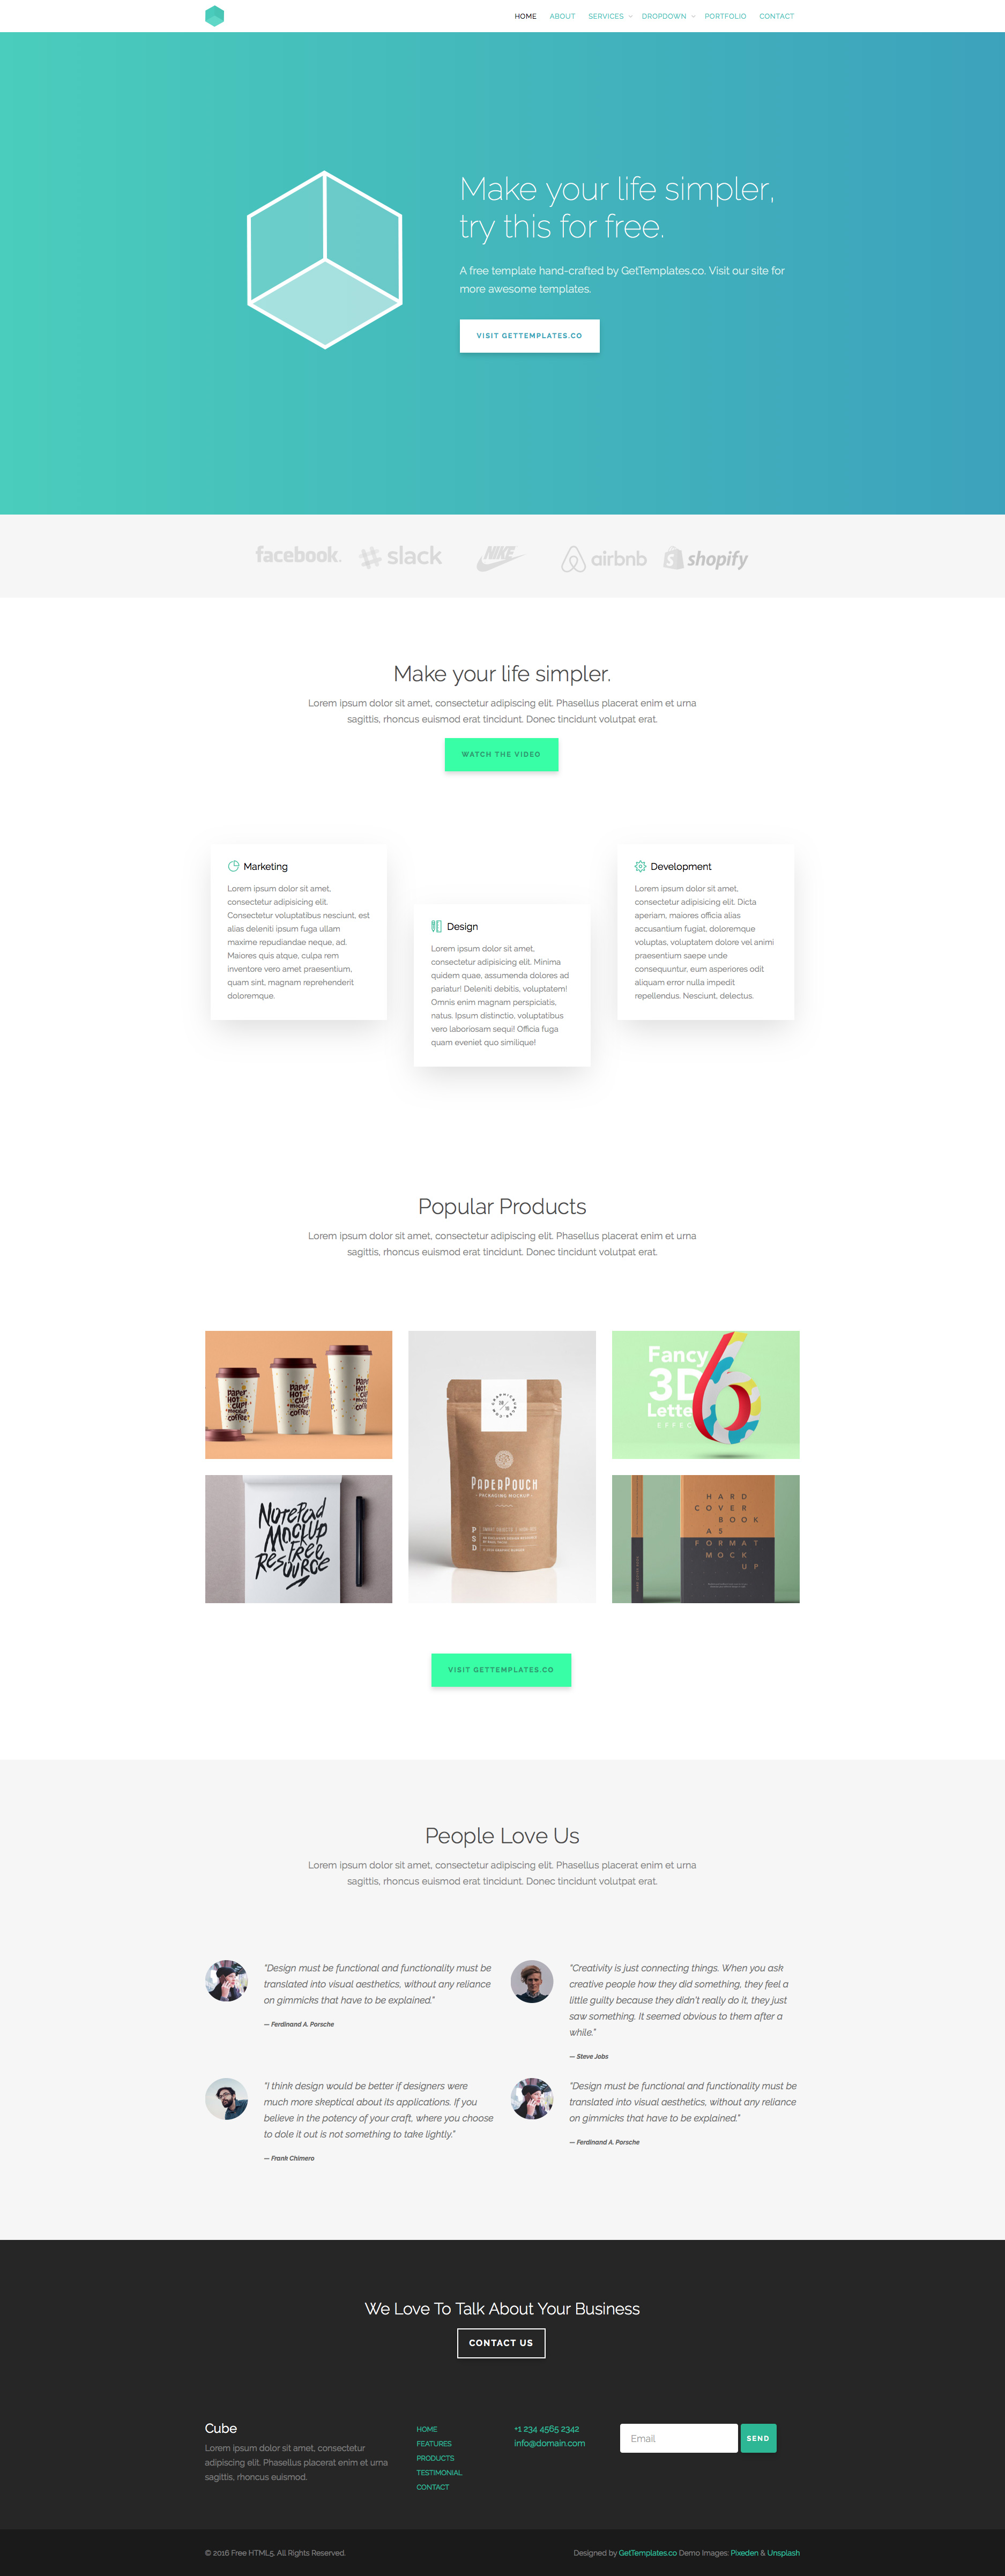 Cube is free responsive HTML5 multipurpose website template based on Bootstrap Framework. It is fully responsive and optimized for retina displays. Cube is built with the latest HTML5 and CSS3 technologies, and the best choice for studio, or creative people.